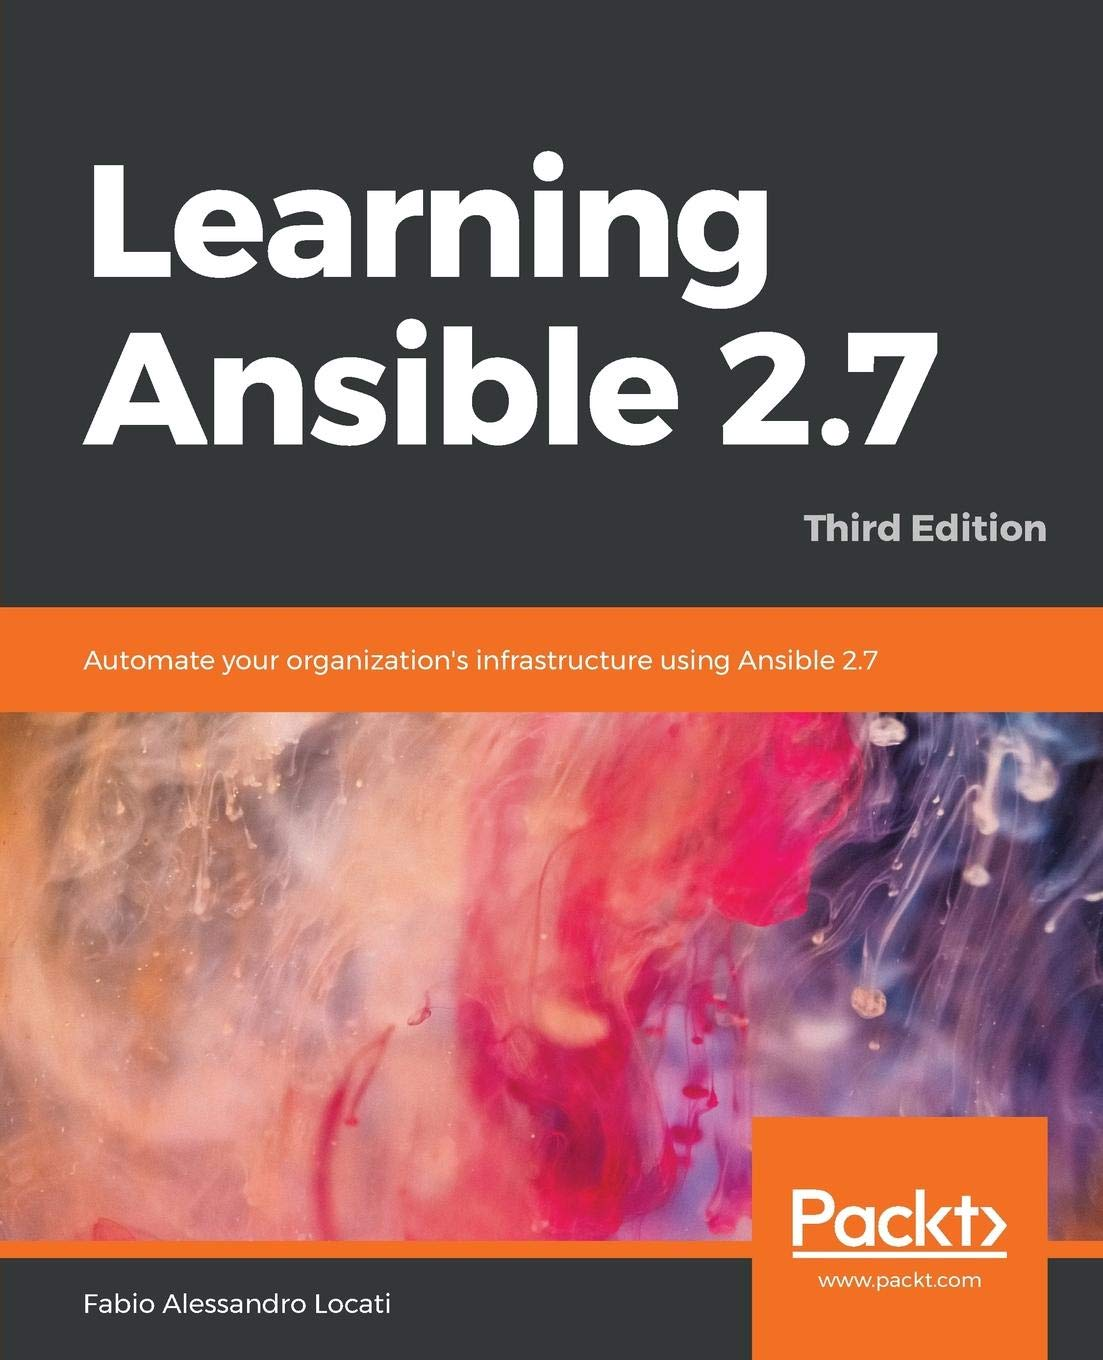 Learning Ansible 2.7